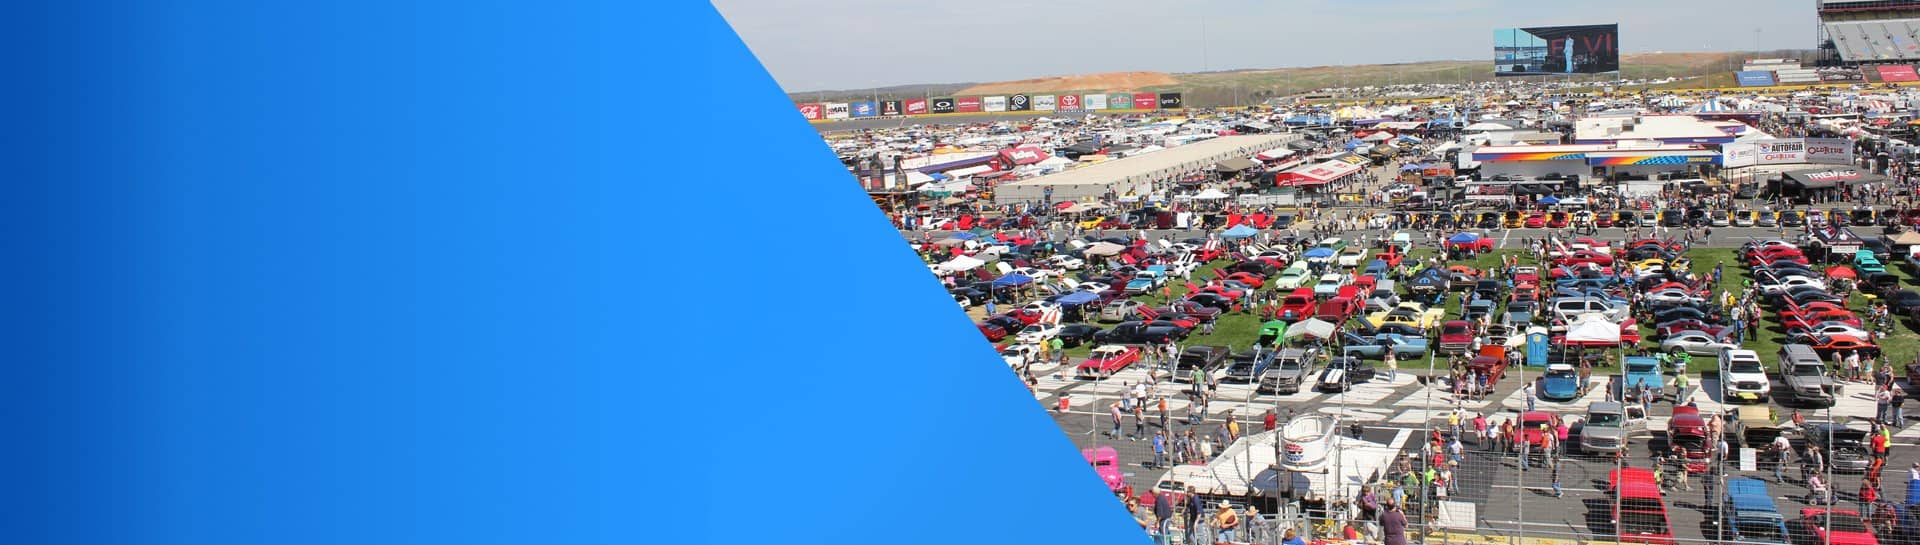 Charlotte Autofair The Largest Collector Vehicle Event In The